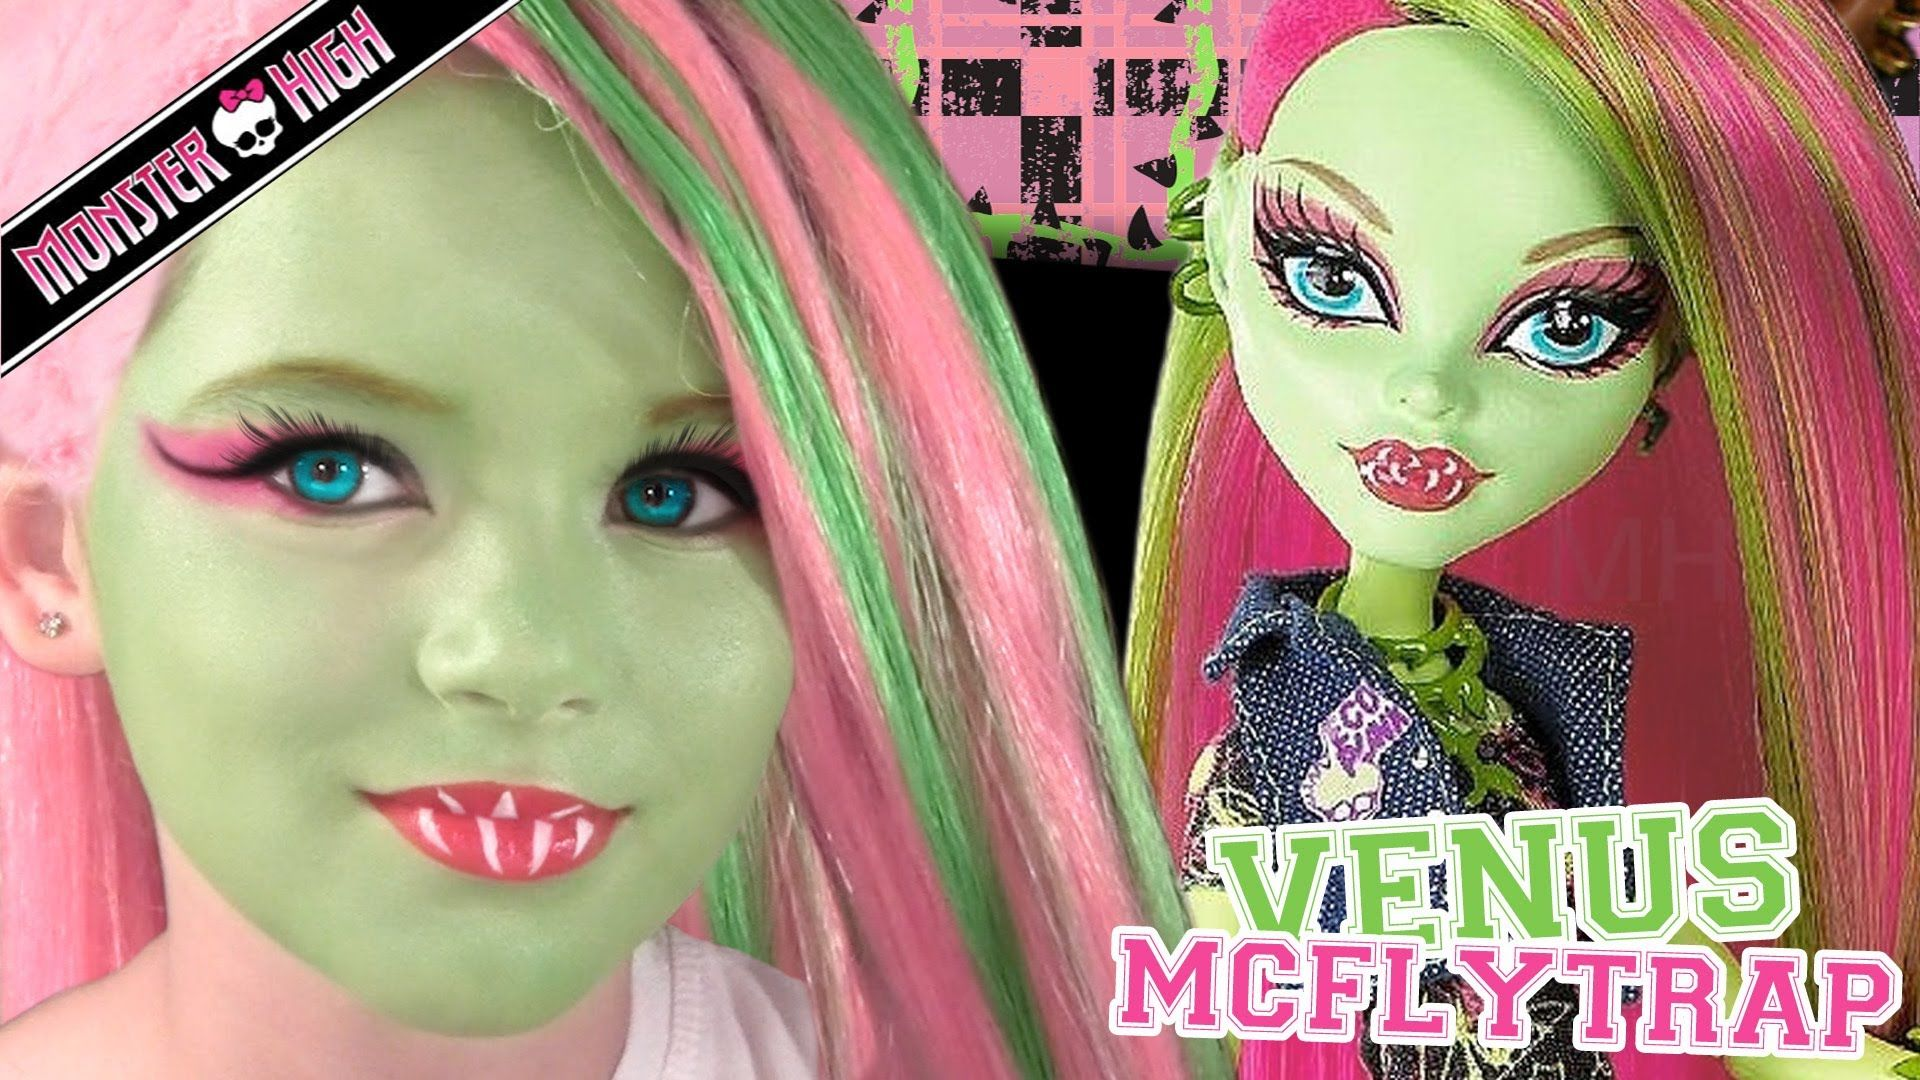 Venus mcflytrap monster high doll costume makeup tutorial for venus mcflytrap monster high doll costume makeup tutorial for cosplay or halloween baditri Gallery